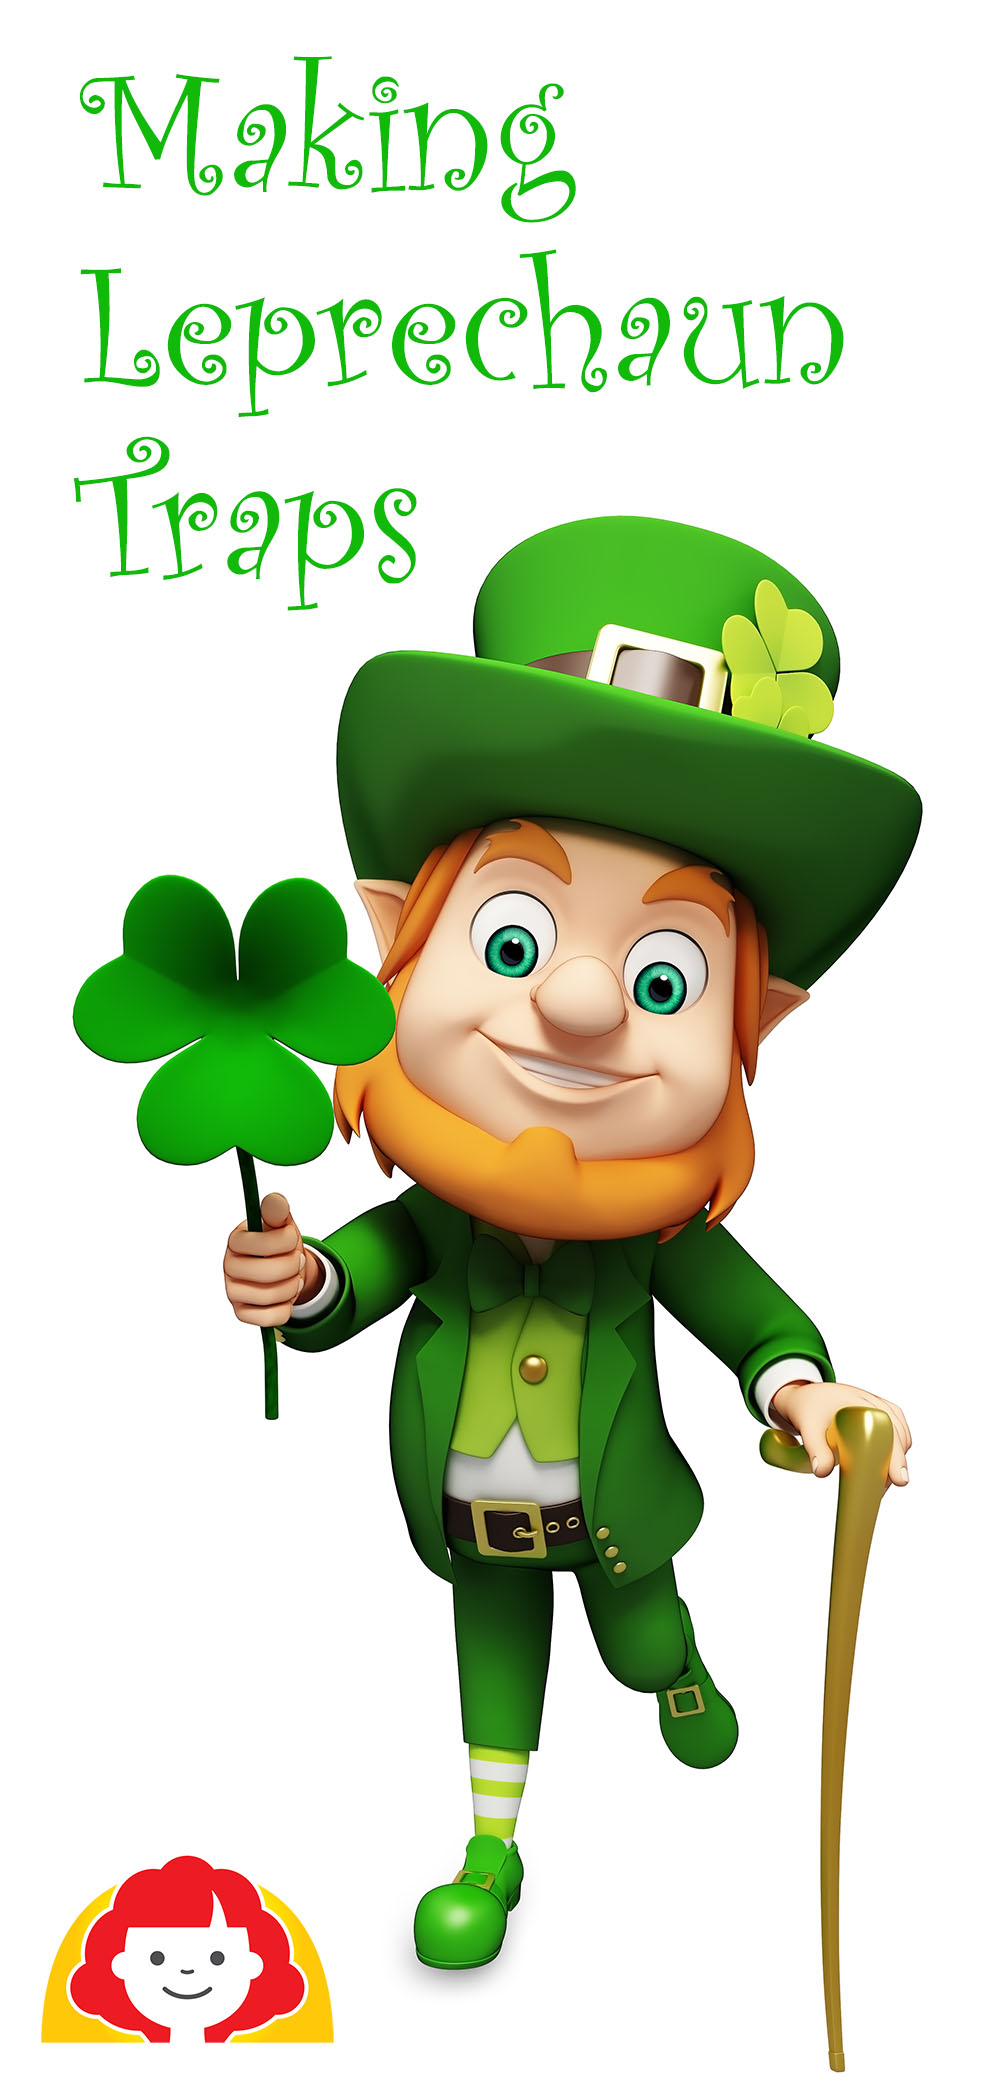 Uncategorized Leprechauns For Kids a fun idea for st patricks day leprechaun traps co worker asked if i was doing trap with my children after looked puzzled she explained it to me create your leprec